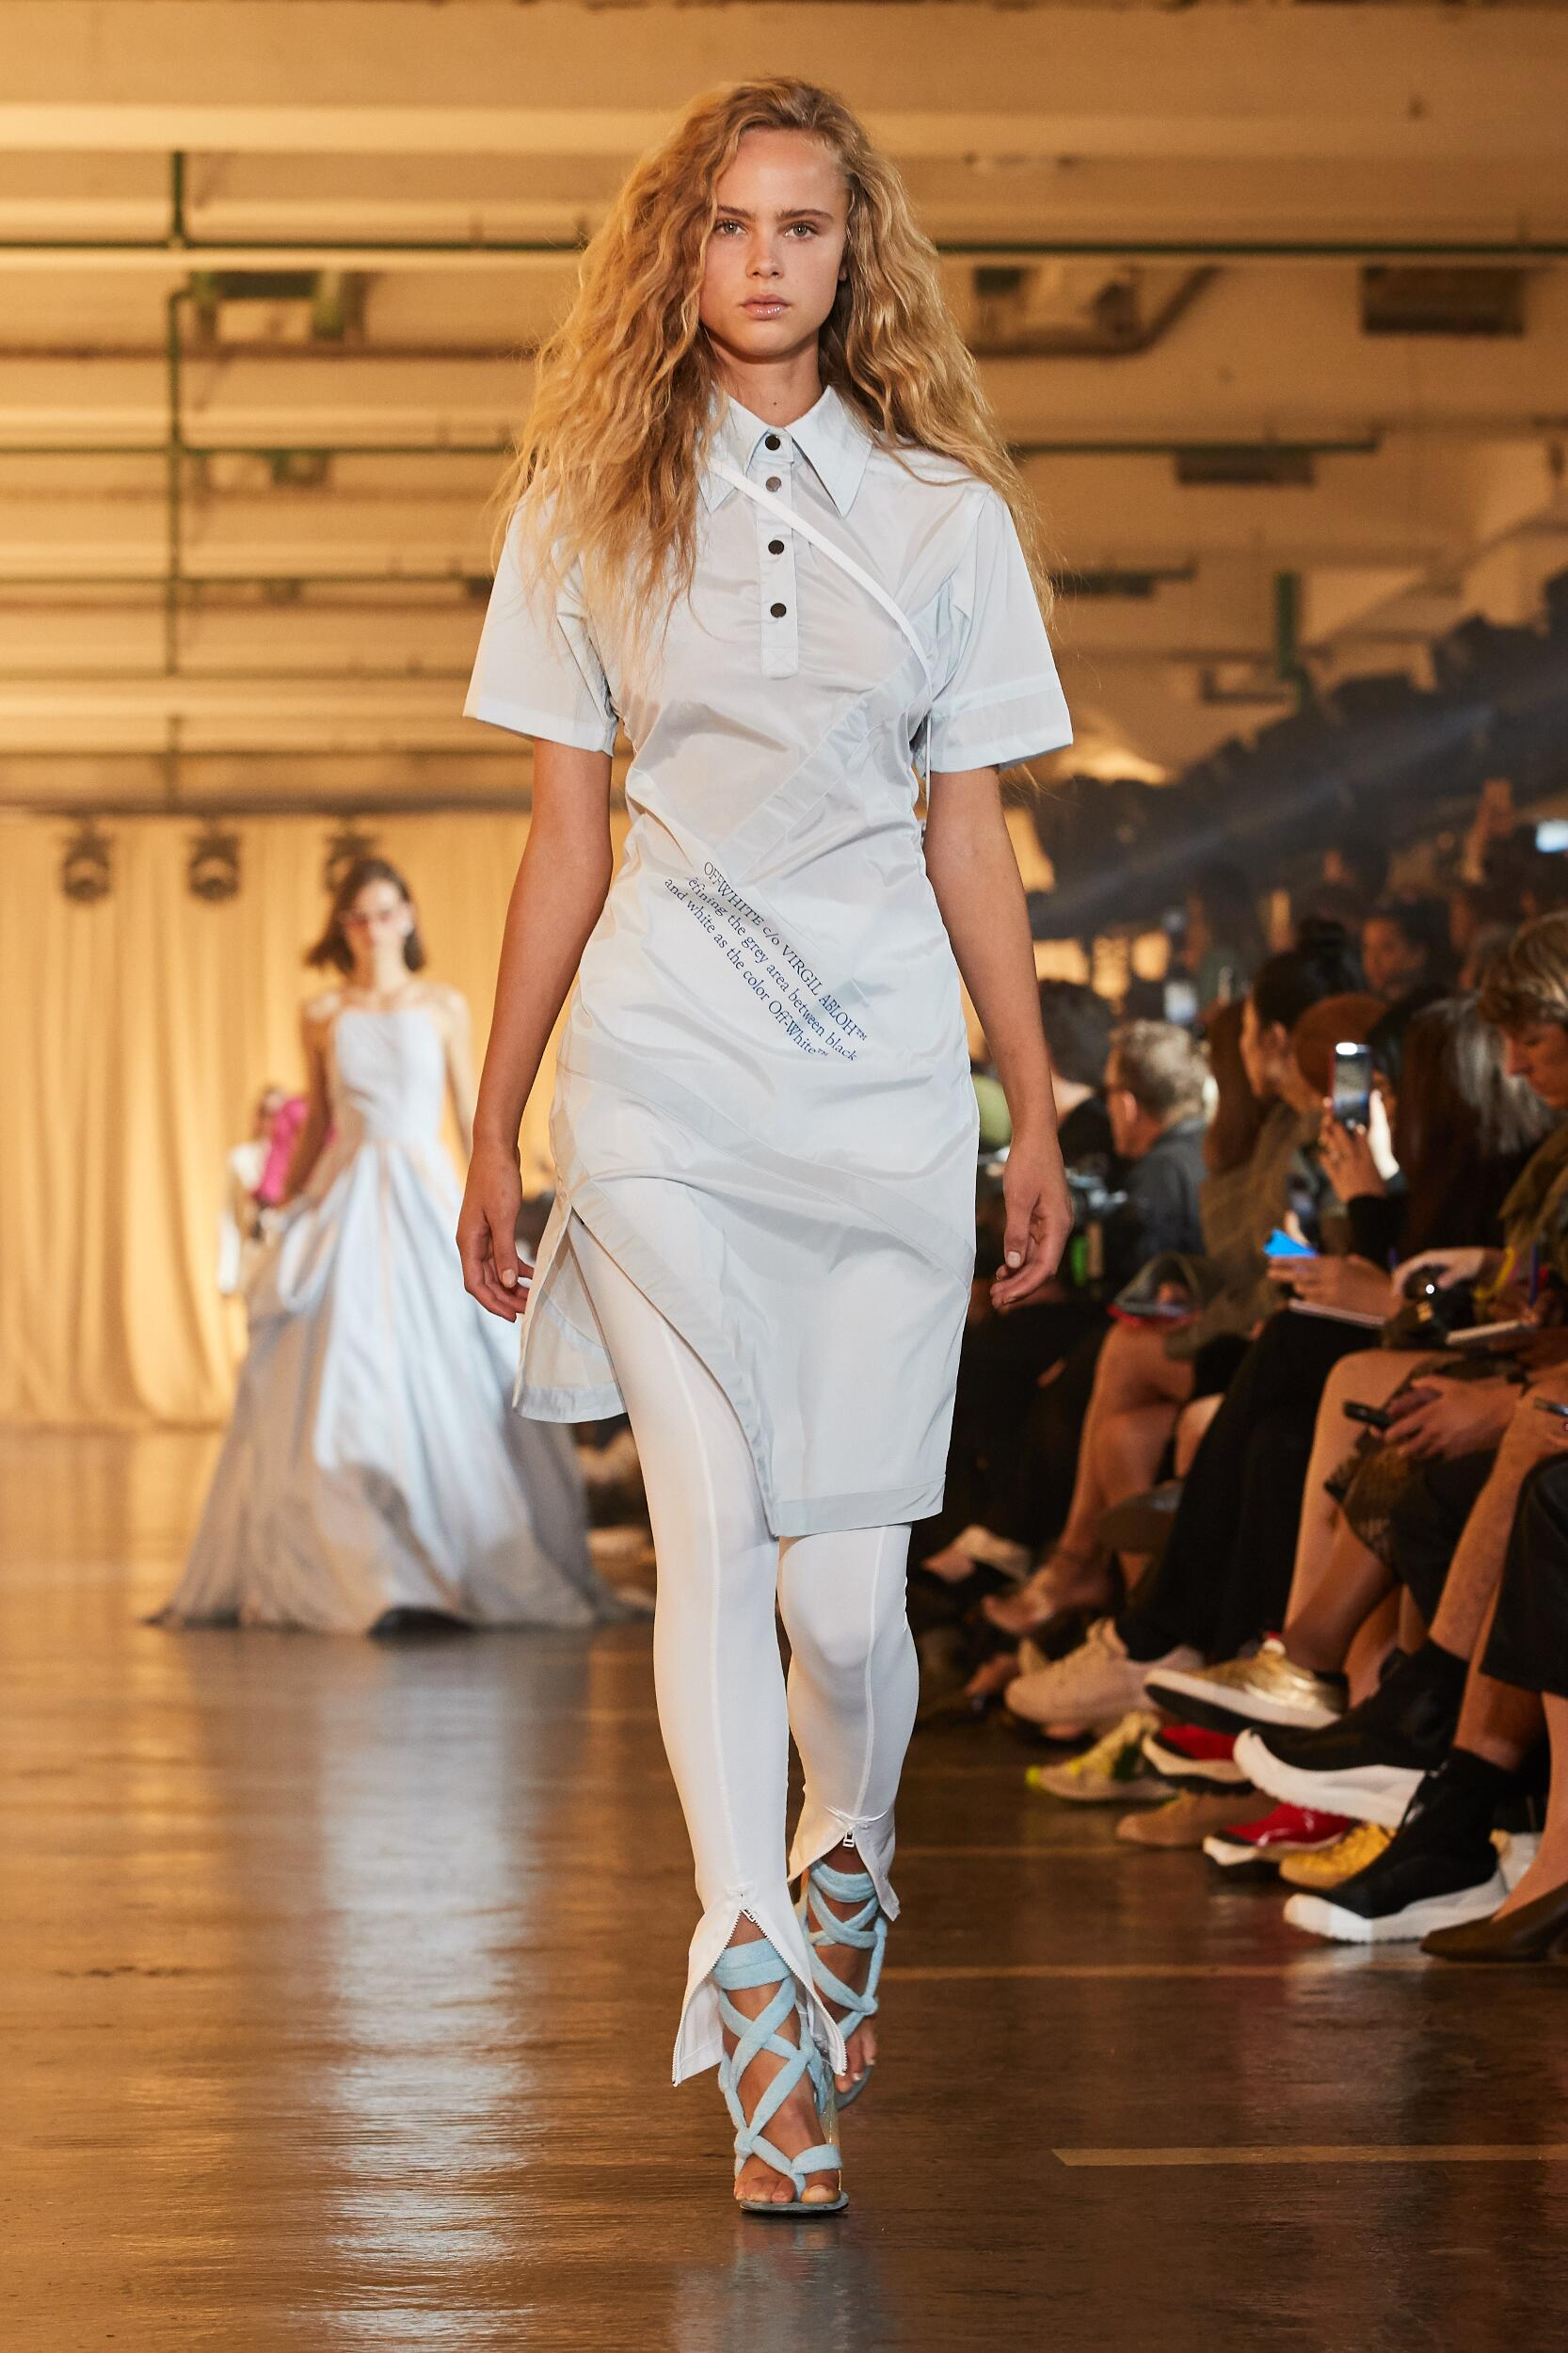 2020 Catwalk Off White c/o Virgil Abloh Summer Woman Collection